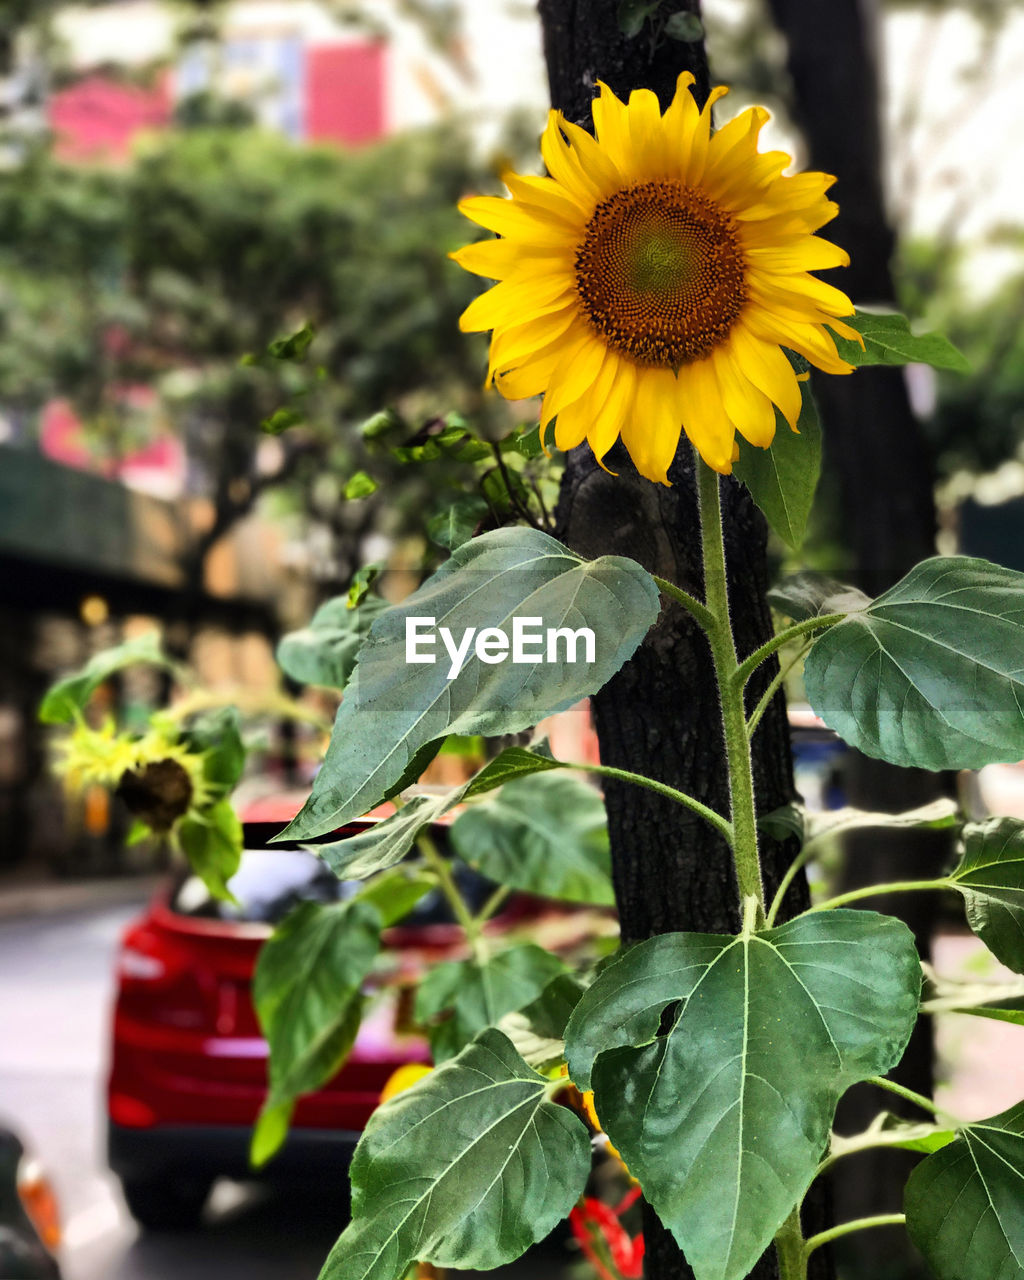 plant, leaf, plant part, growth, flowering plant, flower, beauty in nature, freshness, close-up, vulnerability, focus on foreground, flower head, yellow, petal, fragility, nature, inflorescence, green color, day, no people, outdoors, sunflower